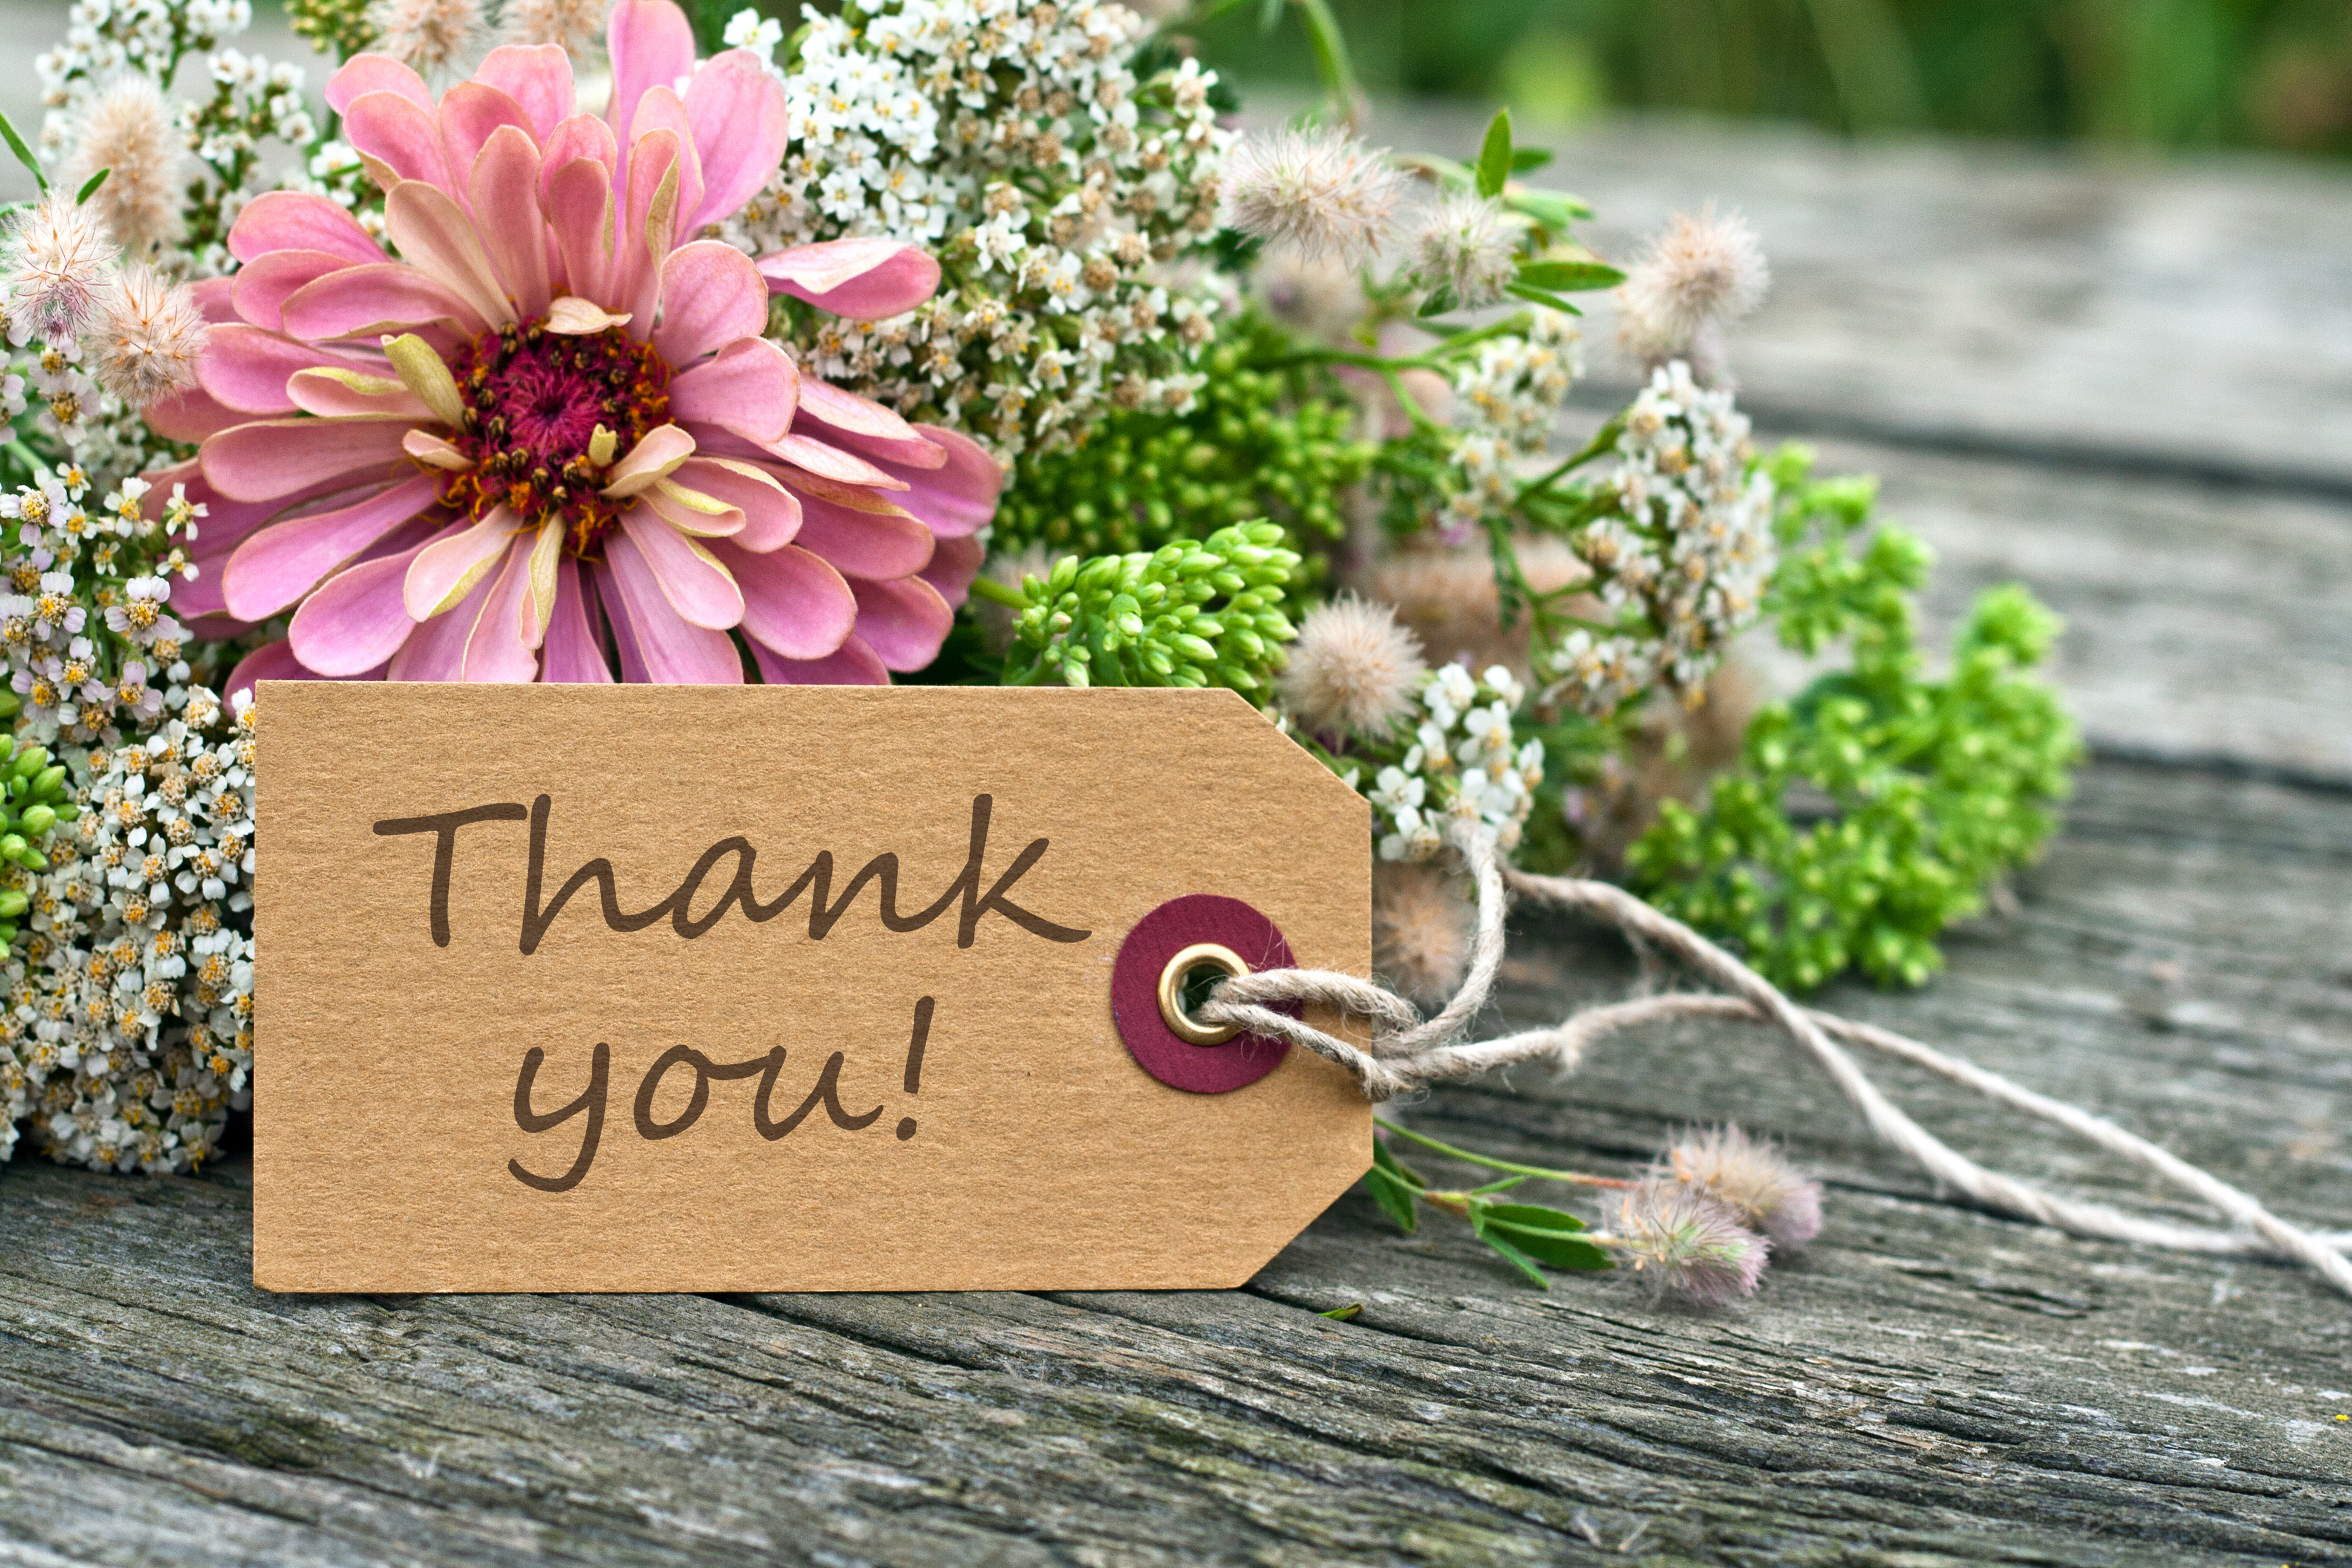 Three reasons that saying thank you is vital for business success